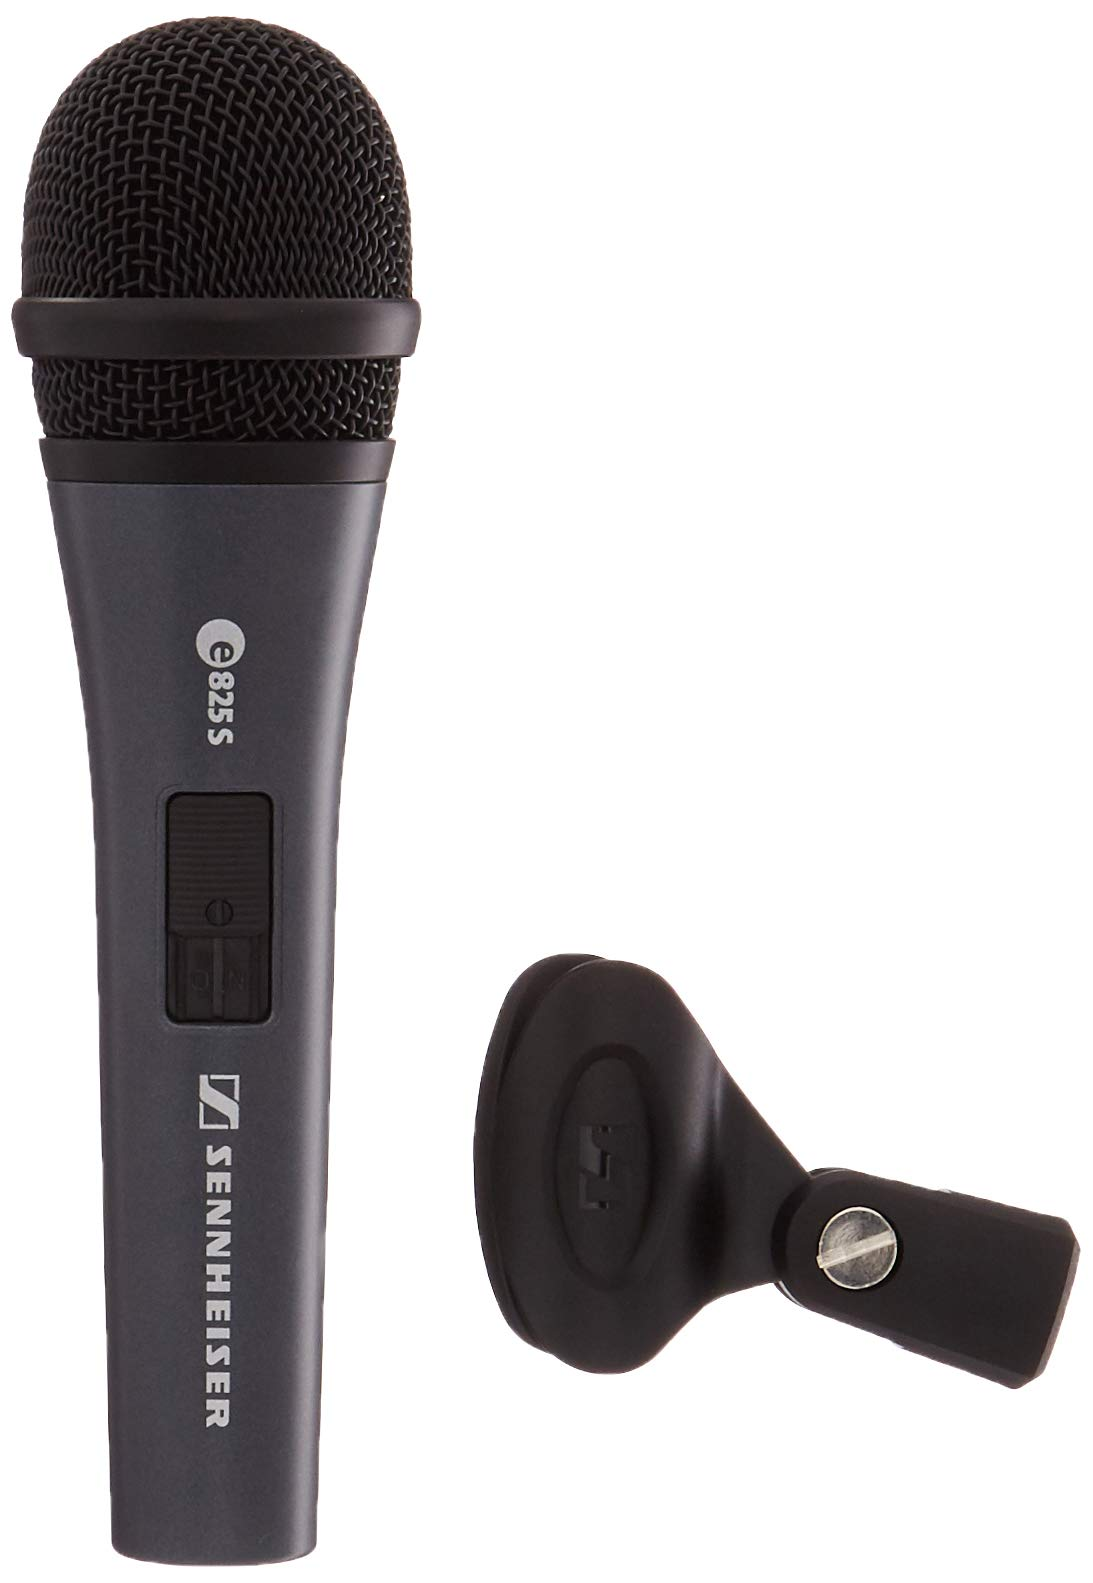 Sennheiser E825-S Handheld Cardiod Dynamic Microphone with On/Off Switch by Sennheiser Pro Audio